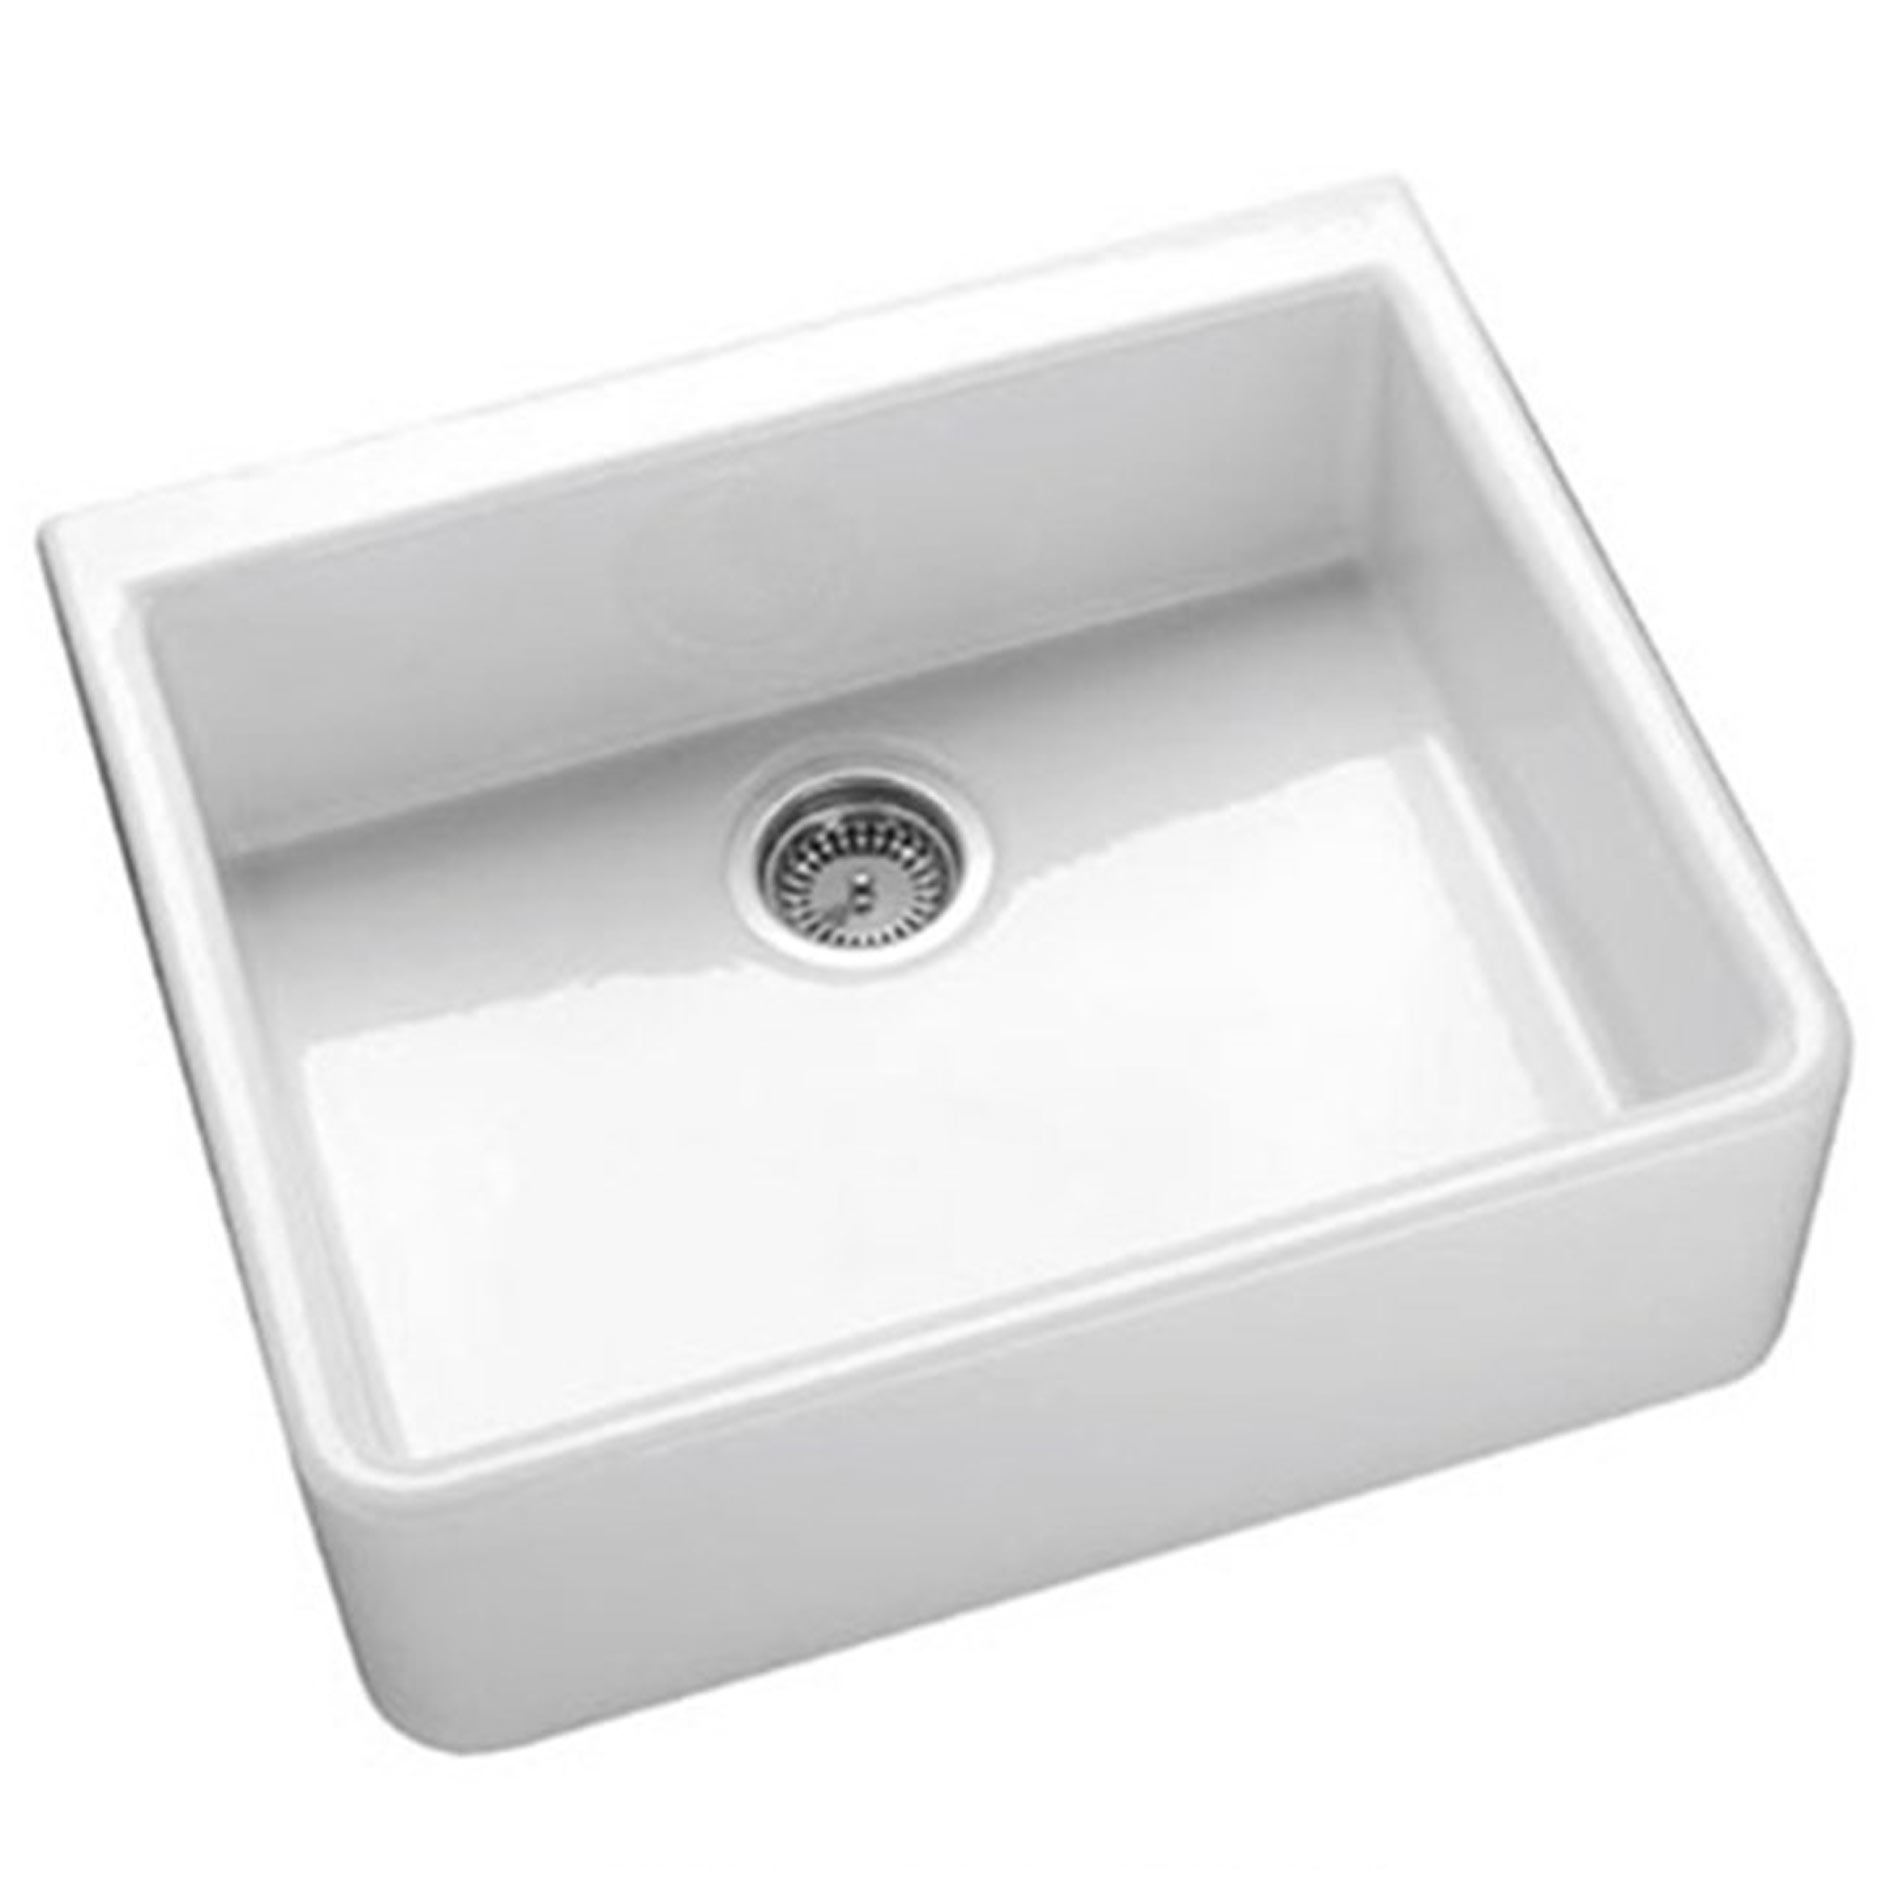 Villeroy & Boch Farmhouse 60 Ceramic Sink 6322 Kitchen Sinks & Taps